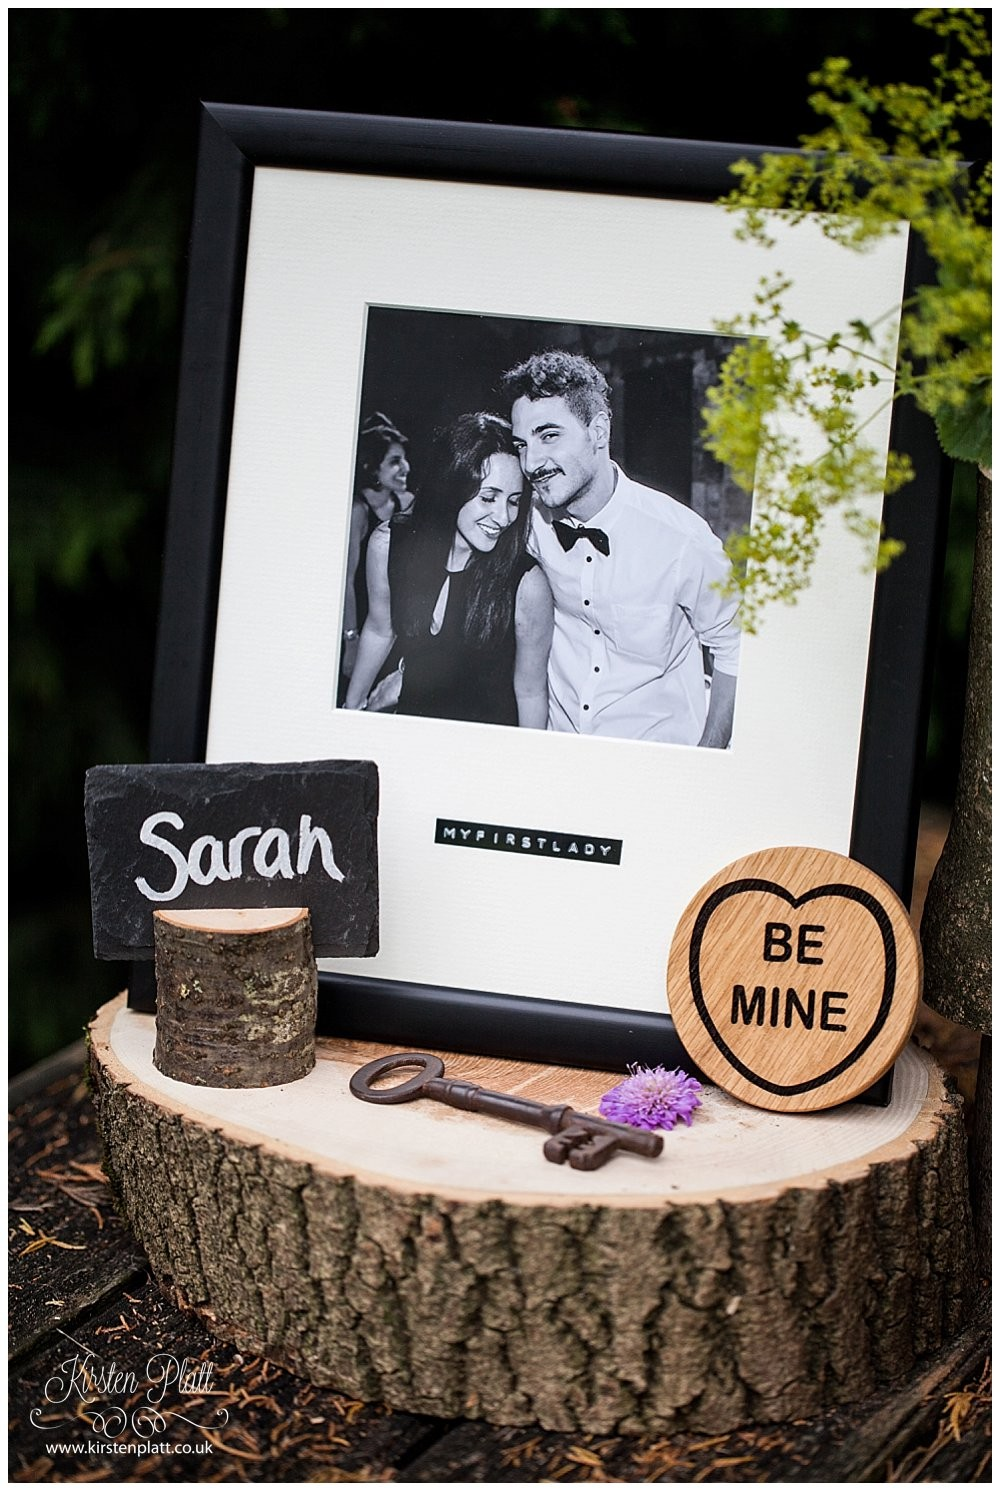 Bespoke and Oak personalised Polaroid inspired picture frames